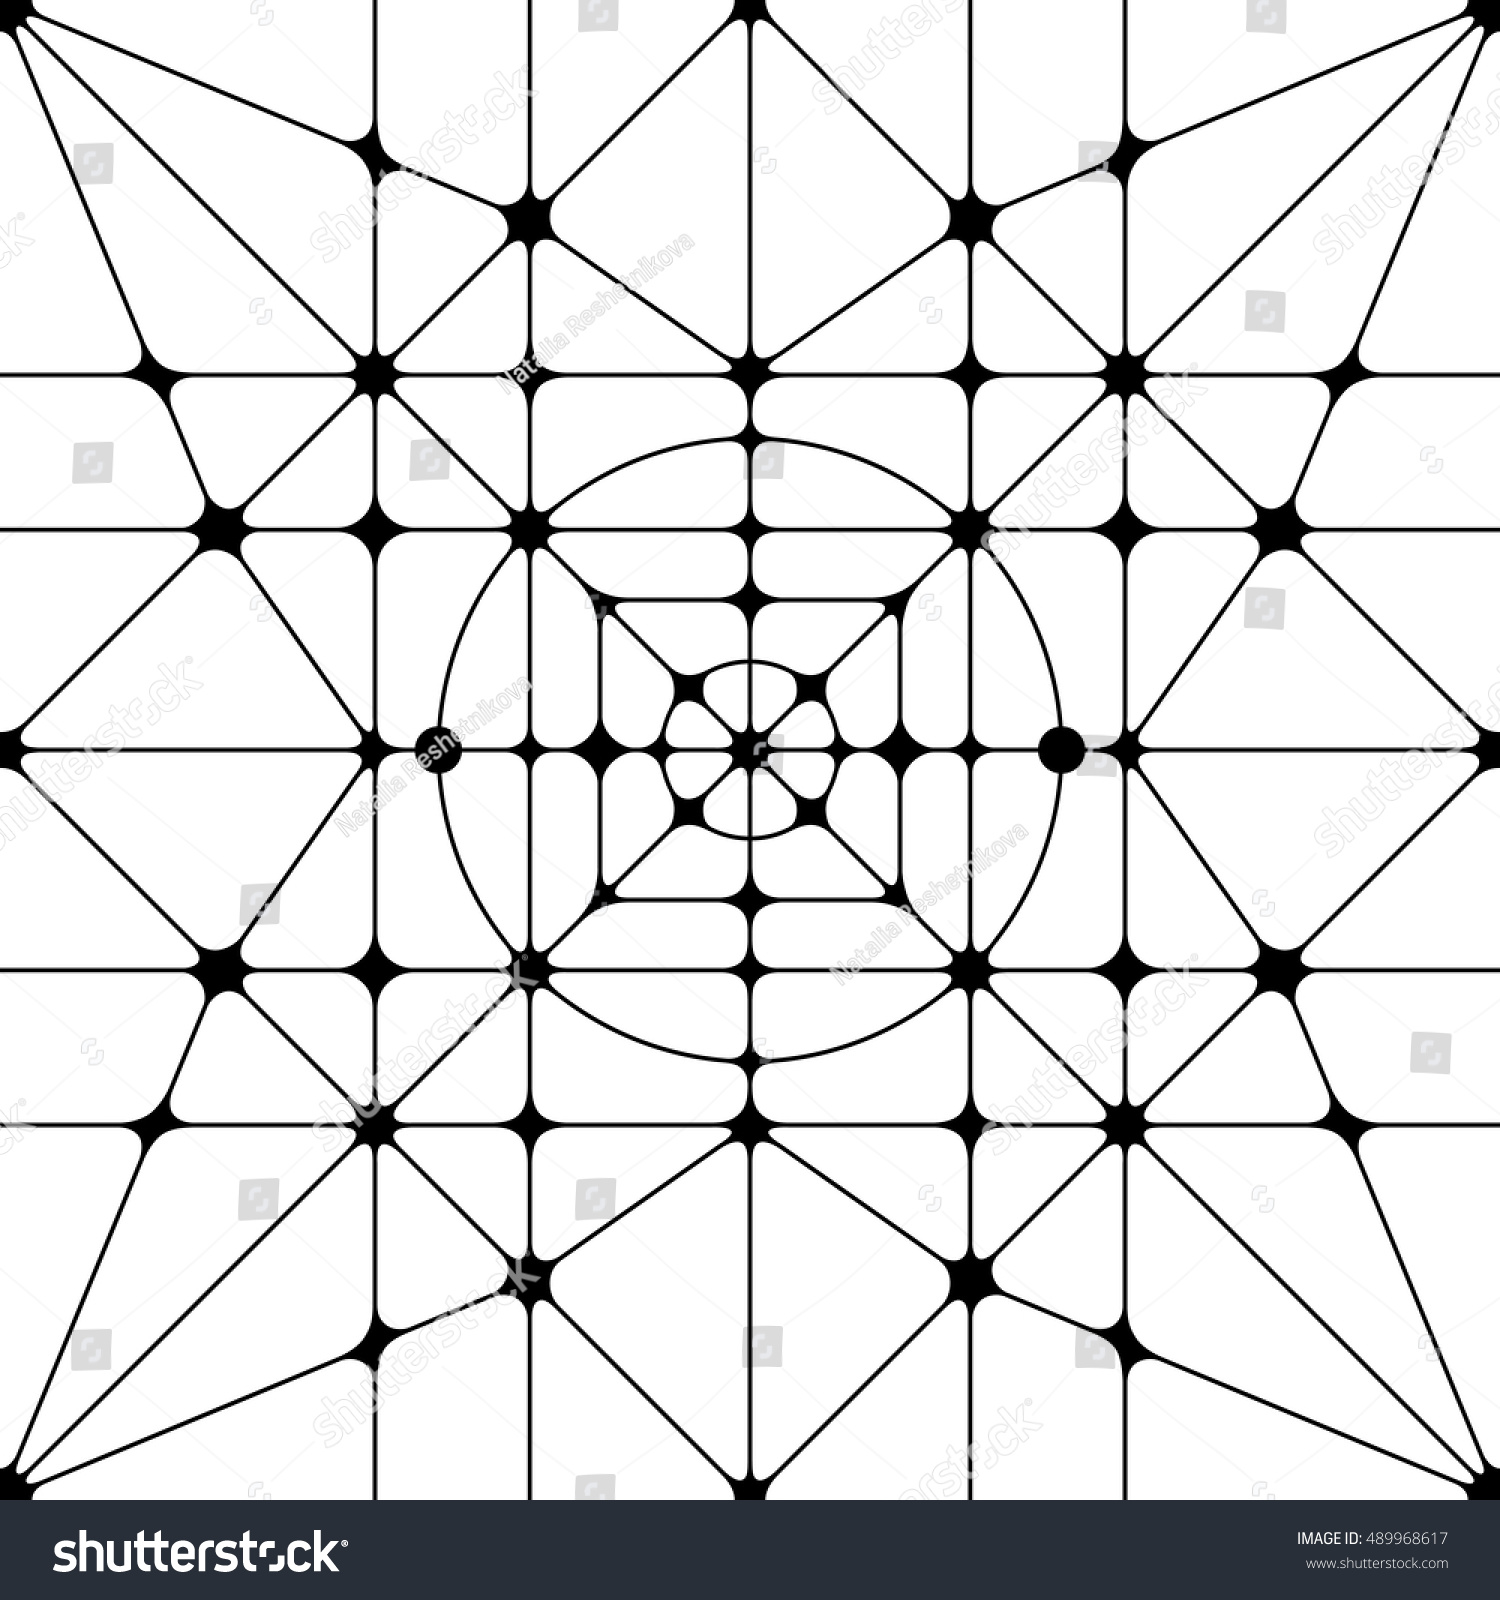 Vector seamless pattern abstract geometric texture stock for Object pool design pattern